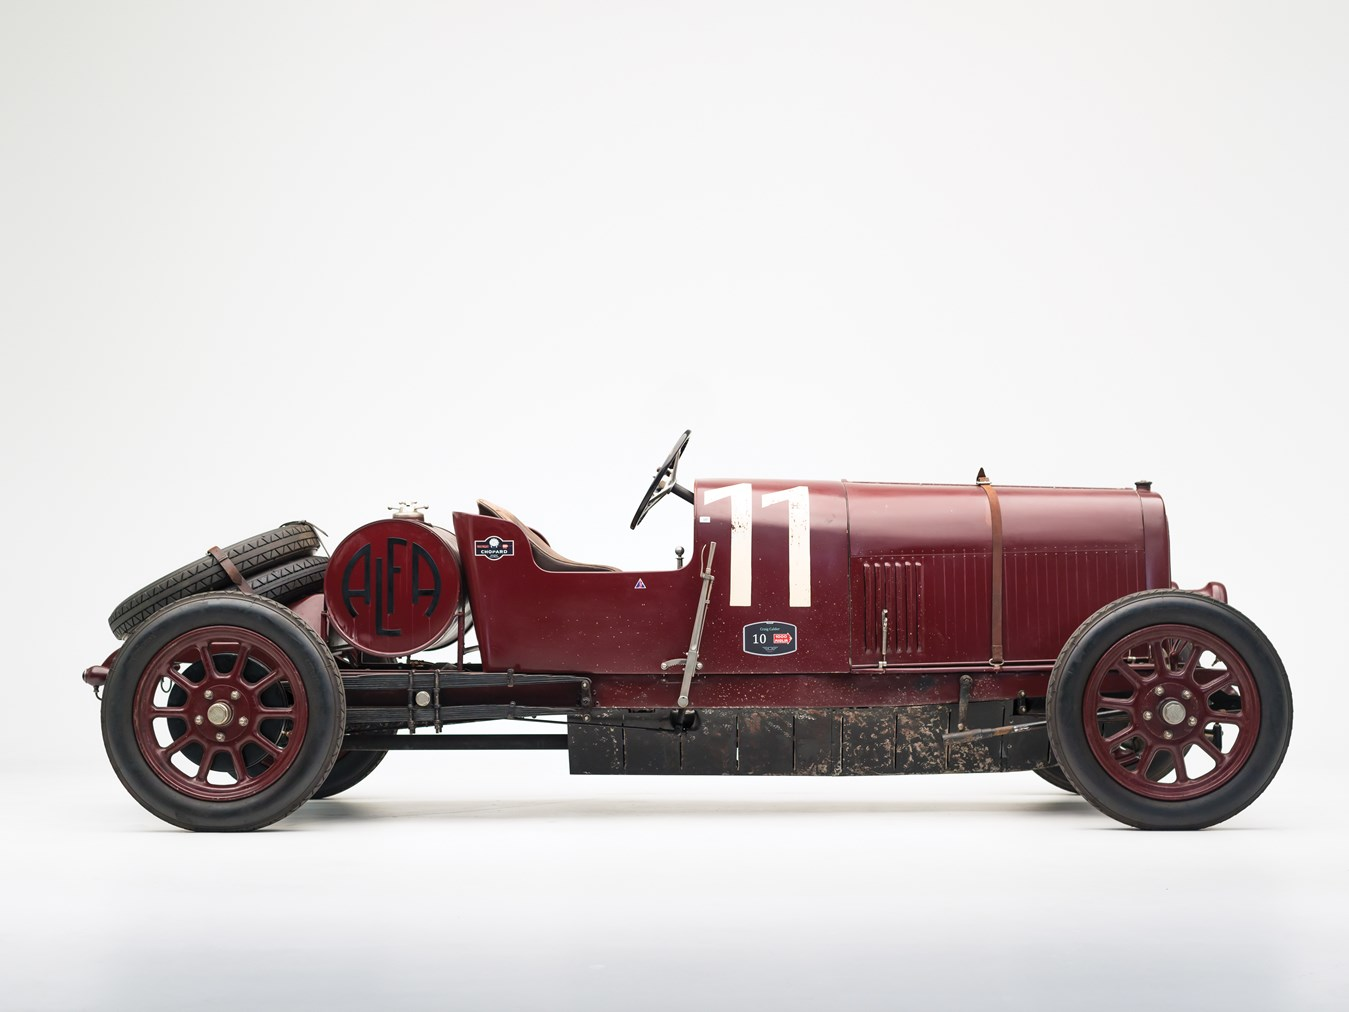 Oldest Alfa Romeo In Existence Heads To Auction With $1.5 Million ...